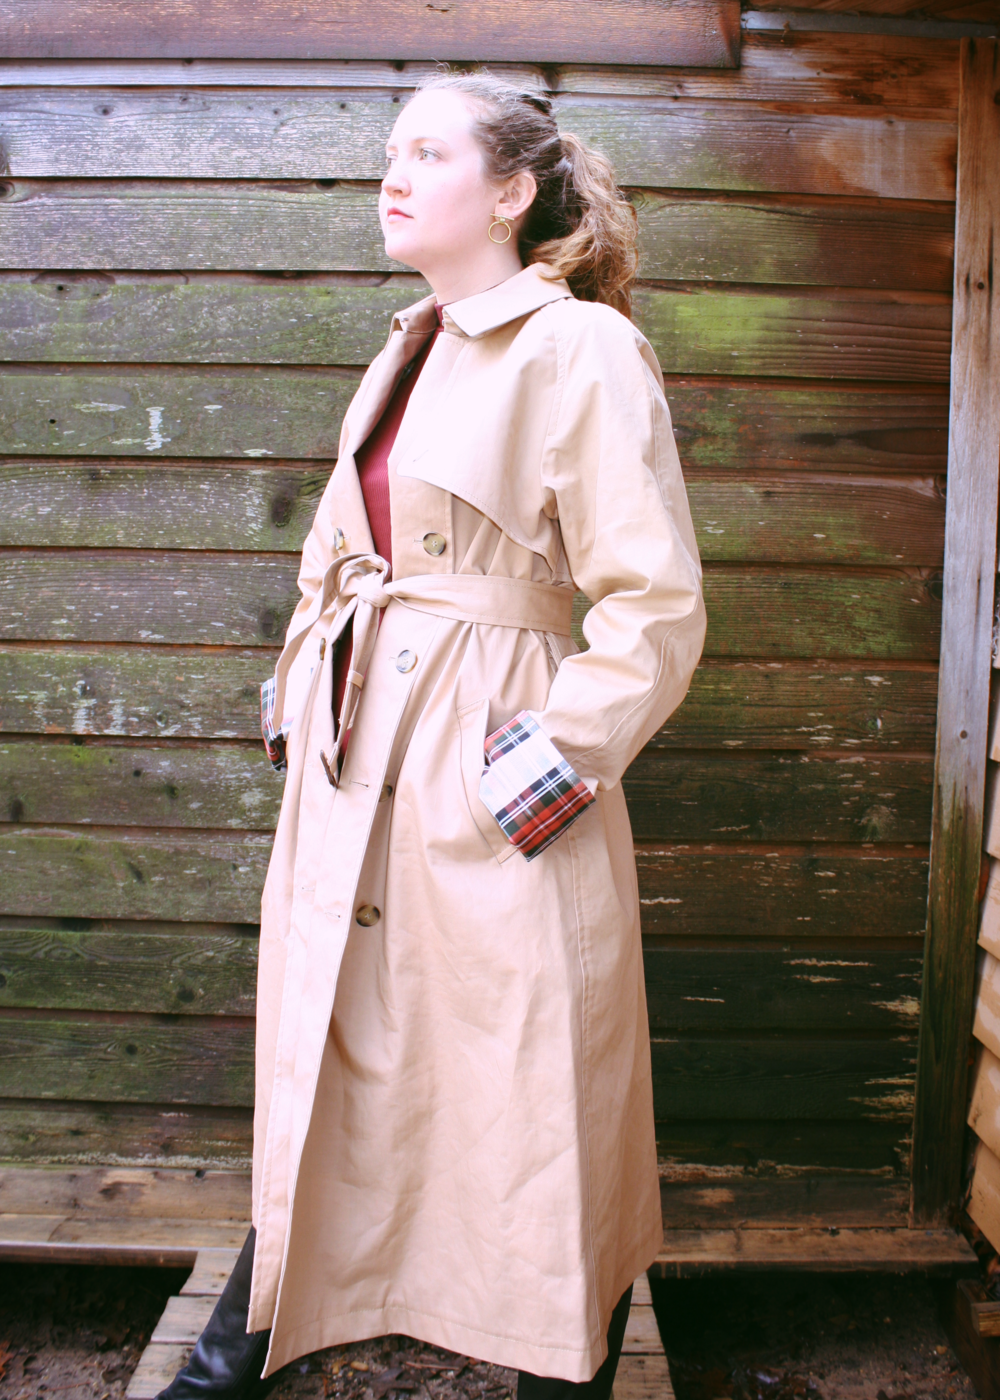 Reformation Burgundy Dress + Vince Camuto Boots + J.W. Anderson & Uniqlo Trench